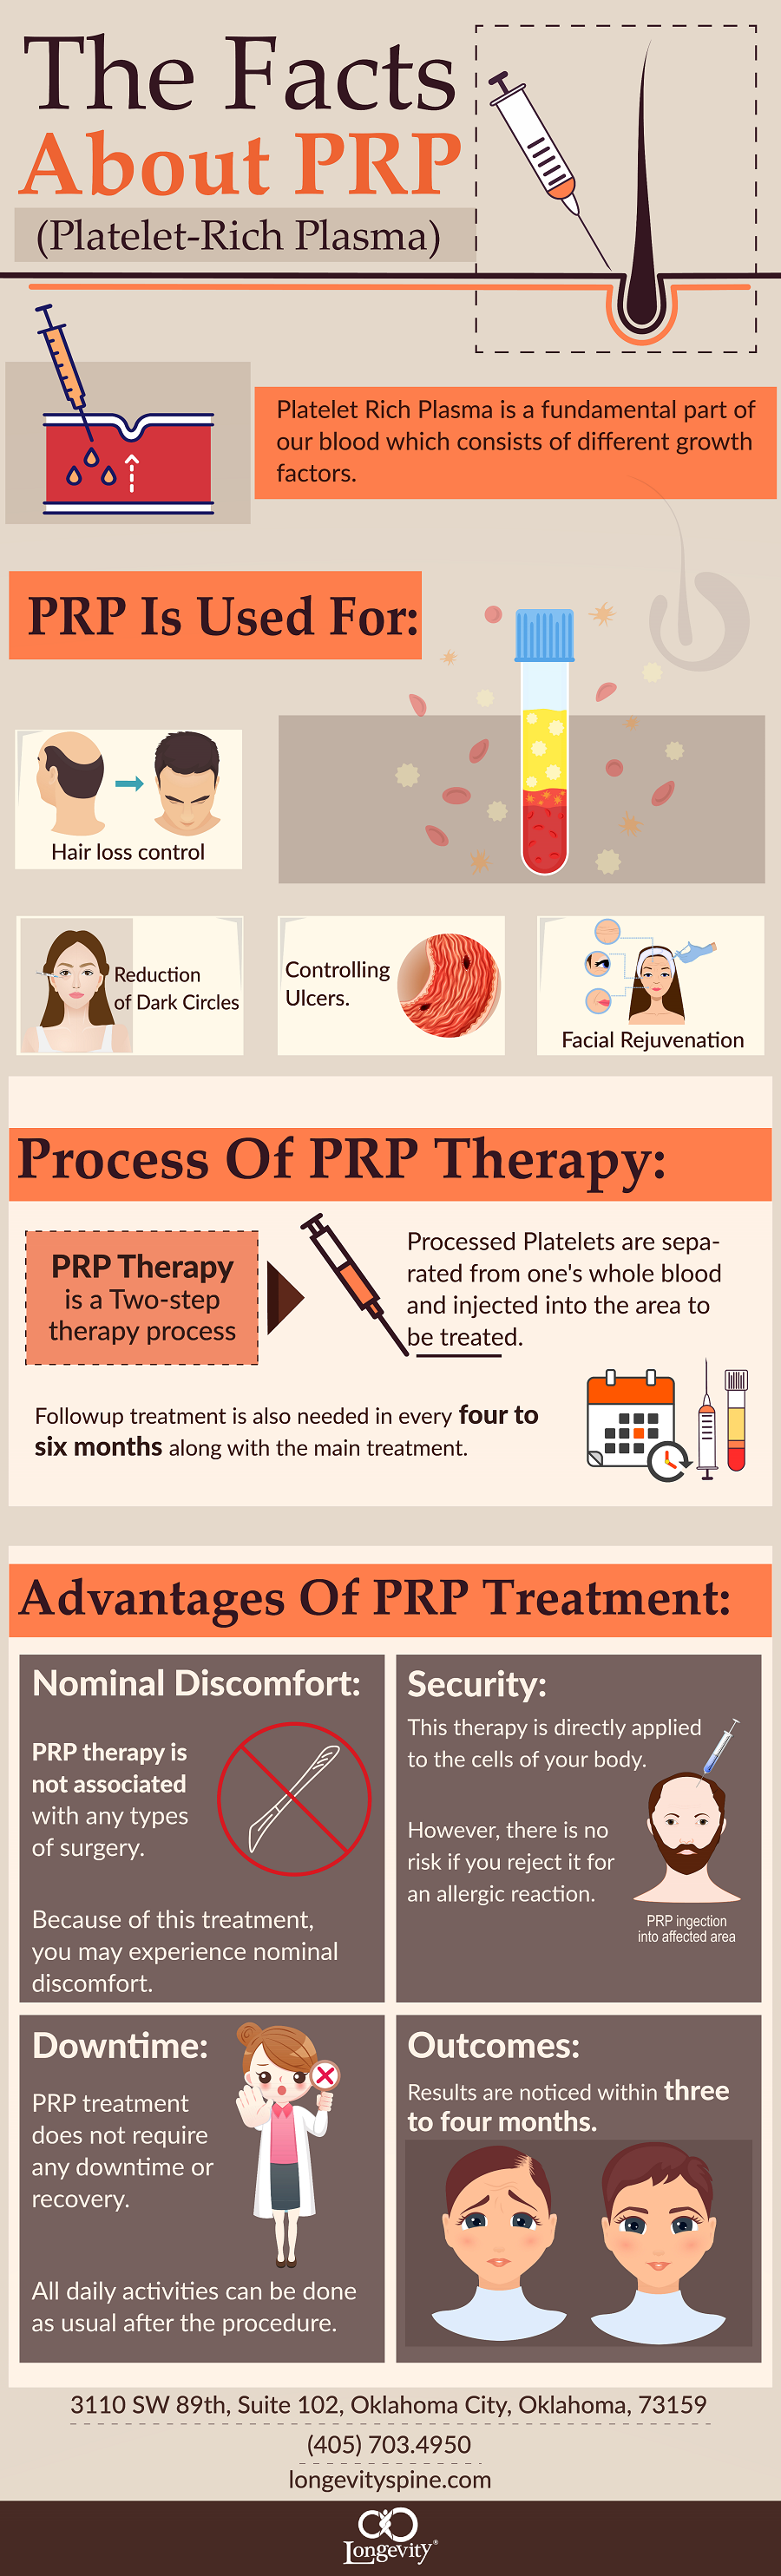 The Facts About PRP.png